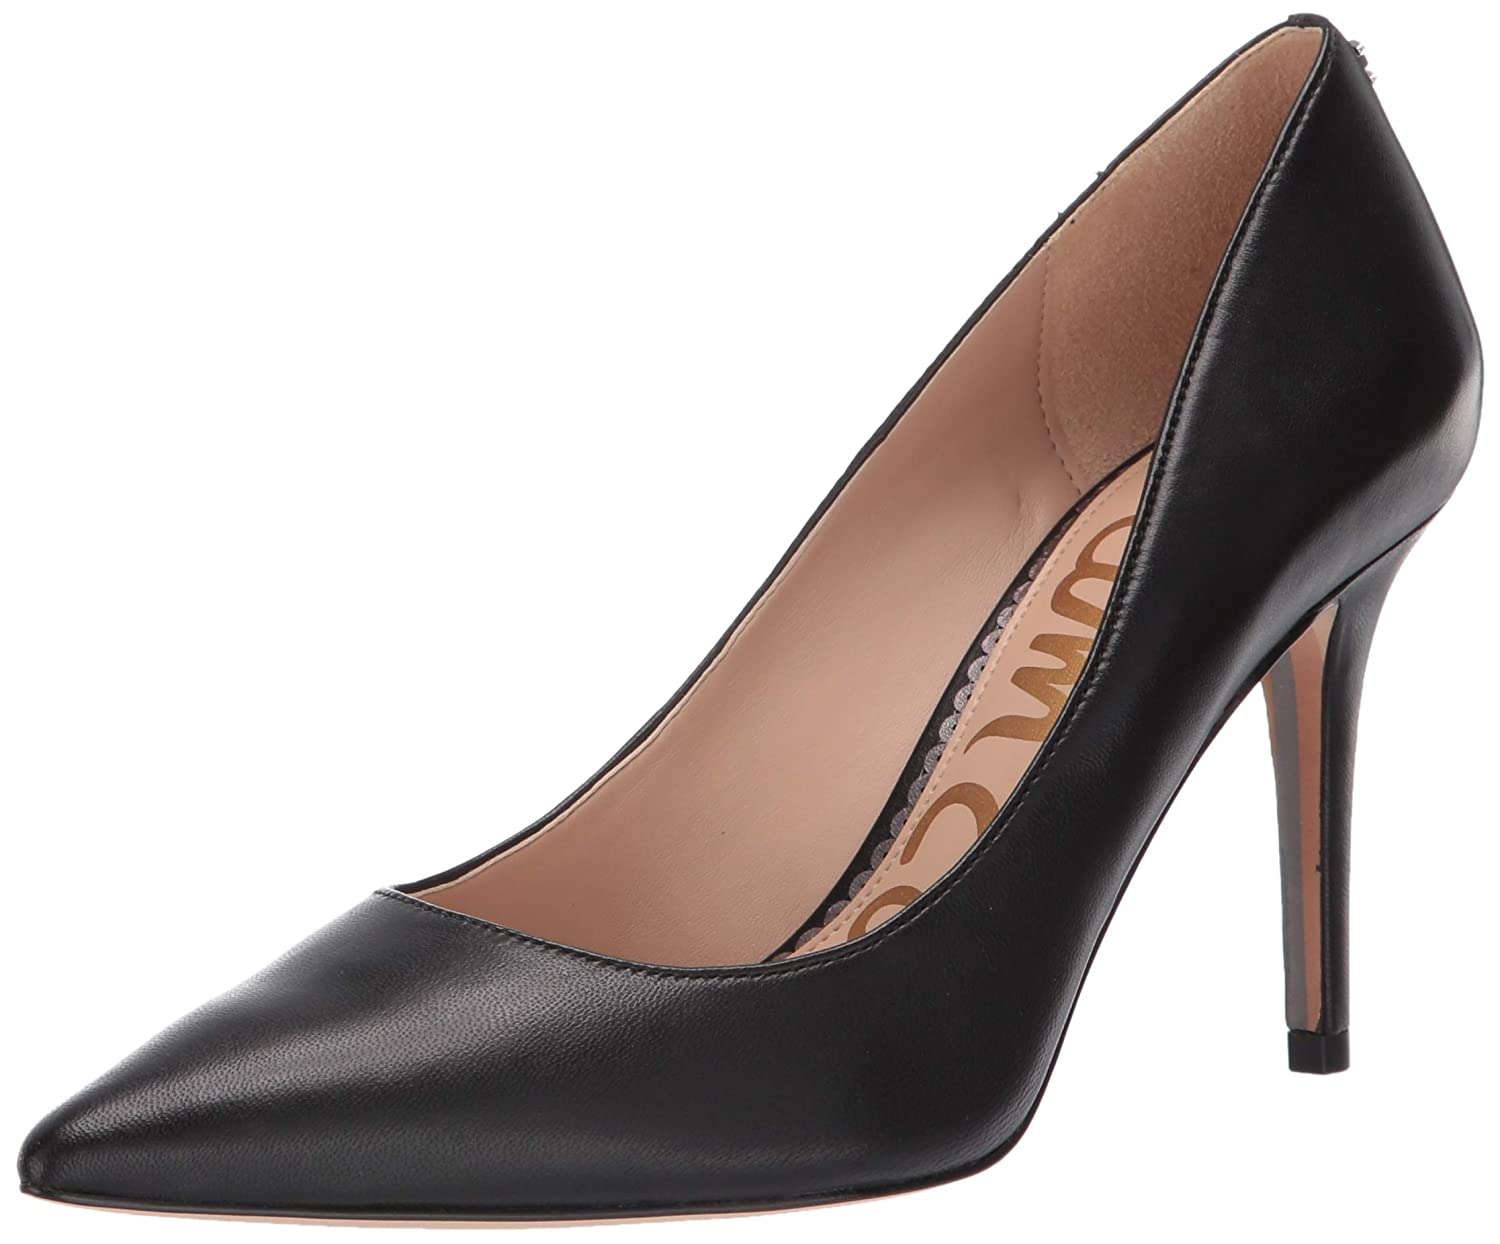 Black Leather Sam Edelman Women's Margie Pump